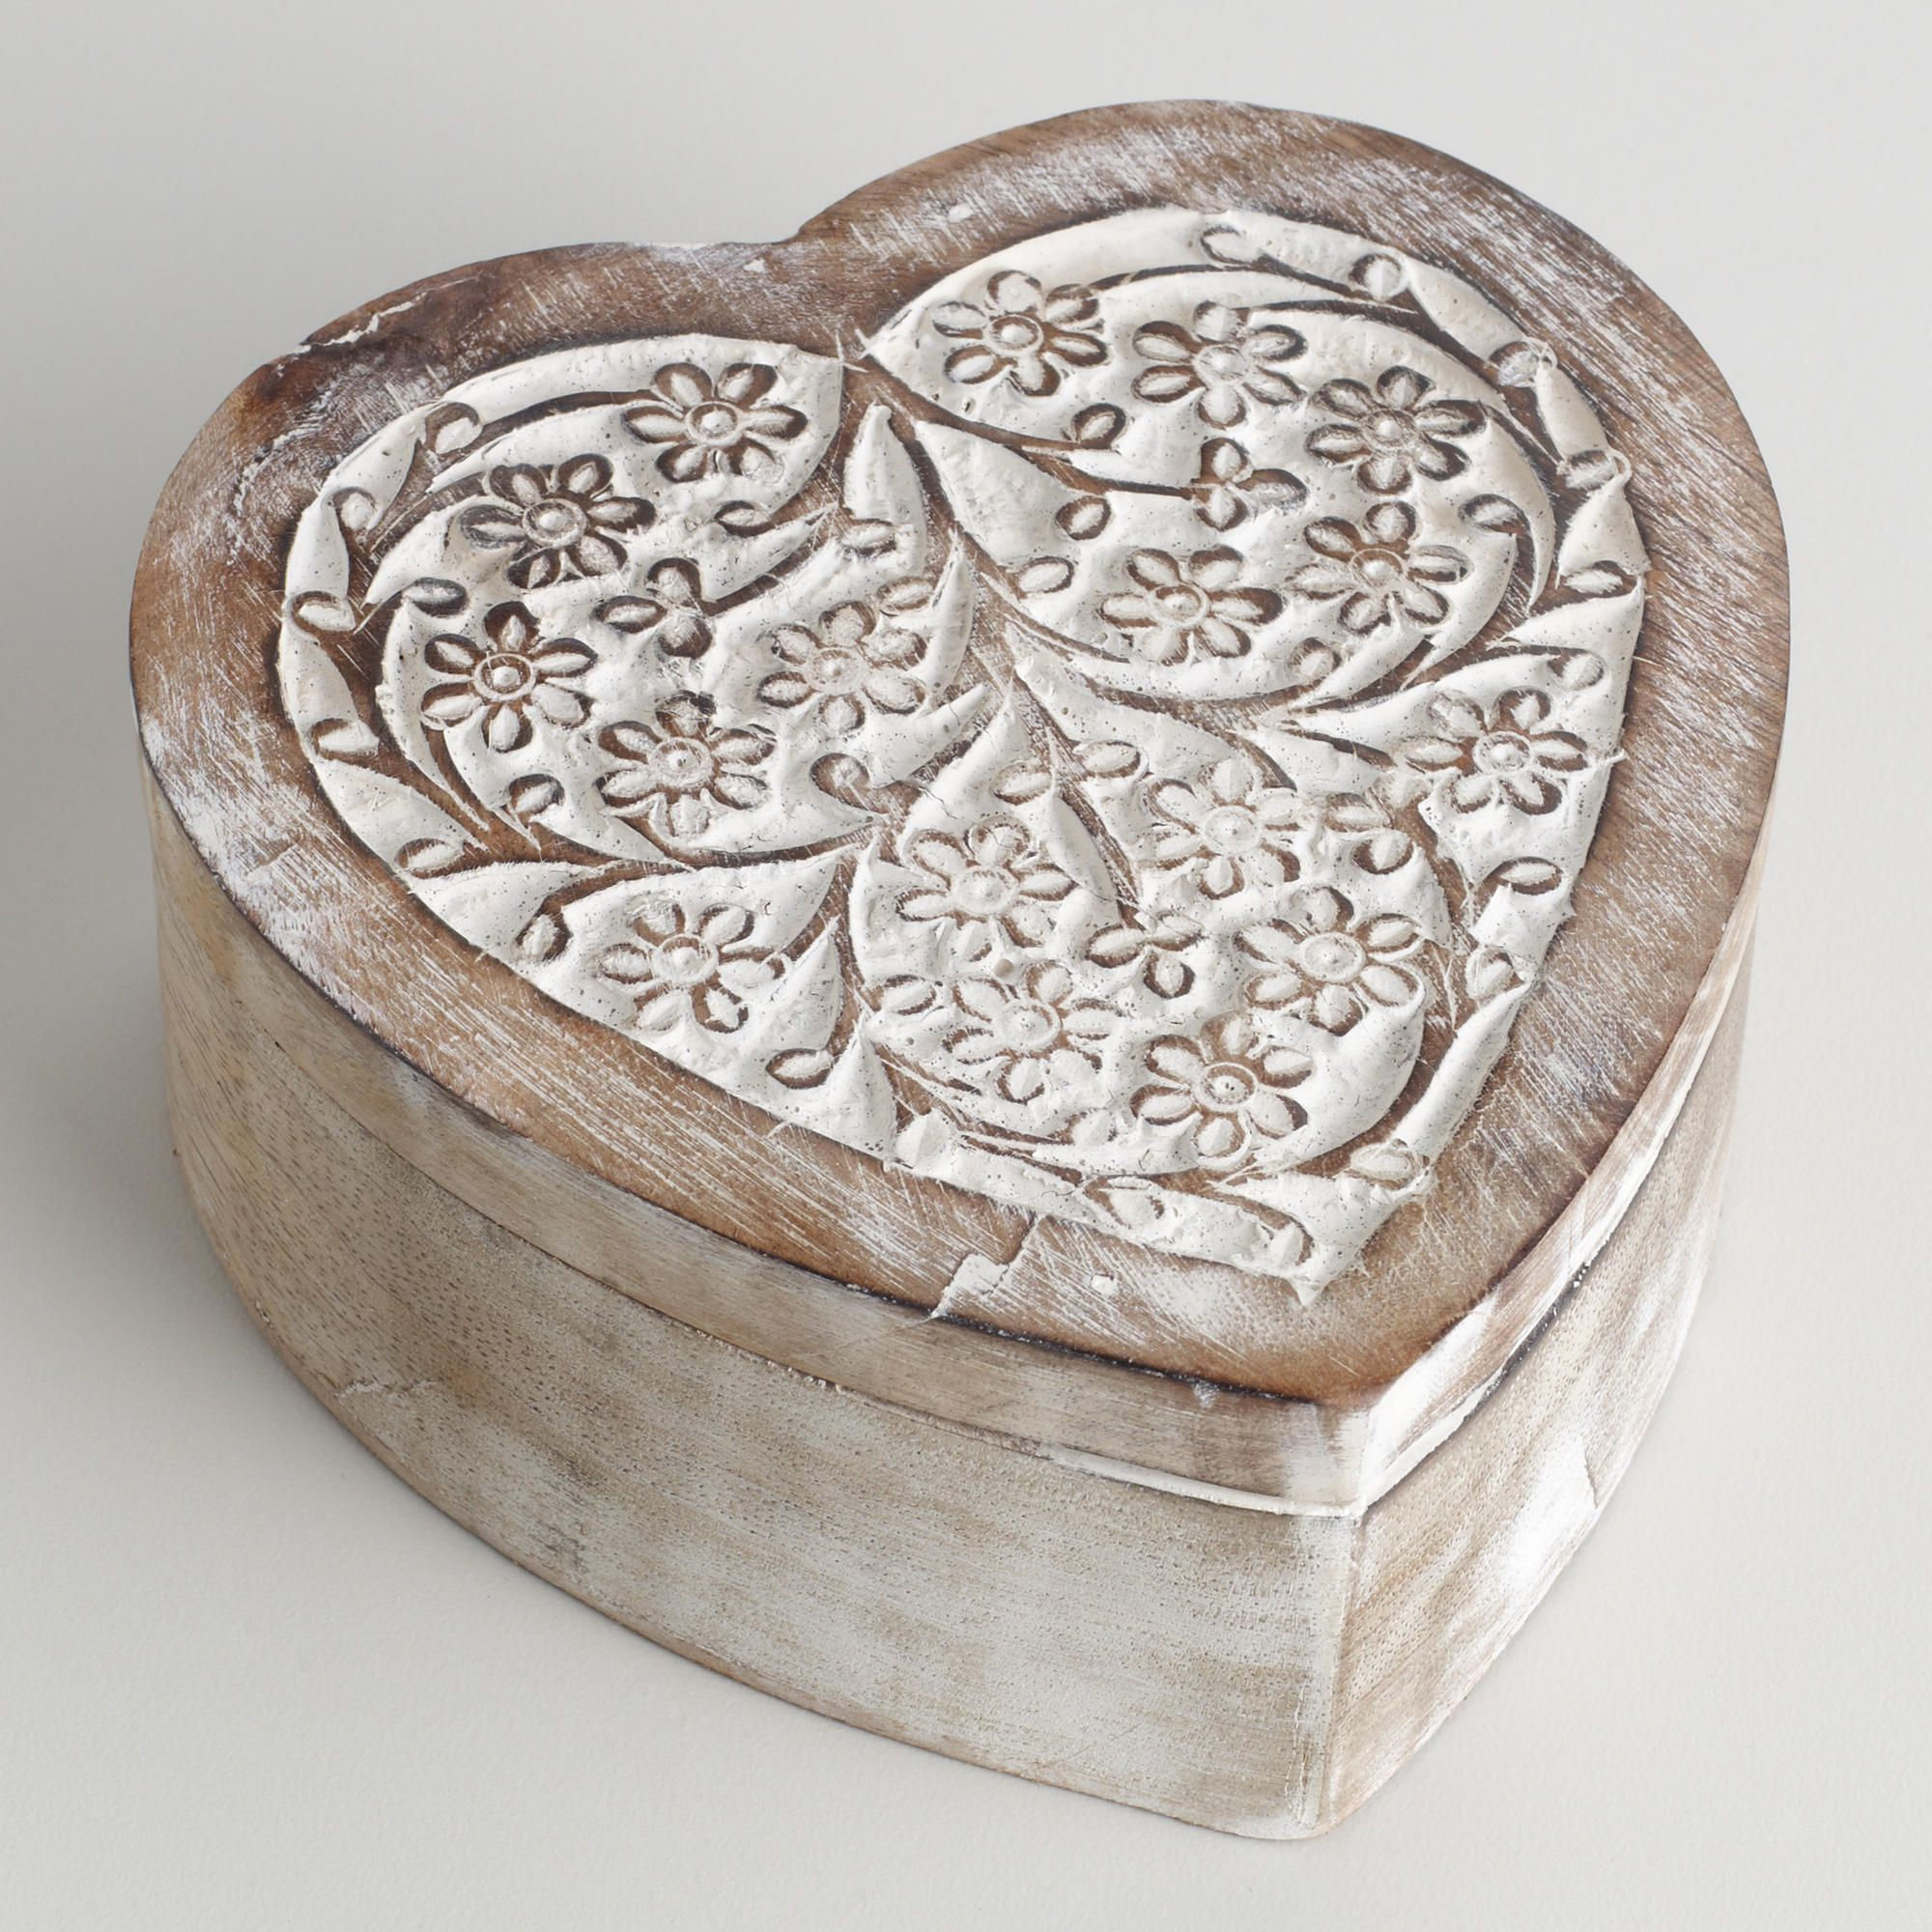 World Market Jewelry Box New Whitewash Helena Heart Jewelry Box  World Market  Finishing Design Ideas